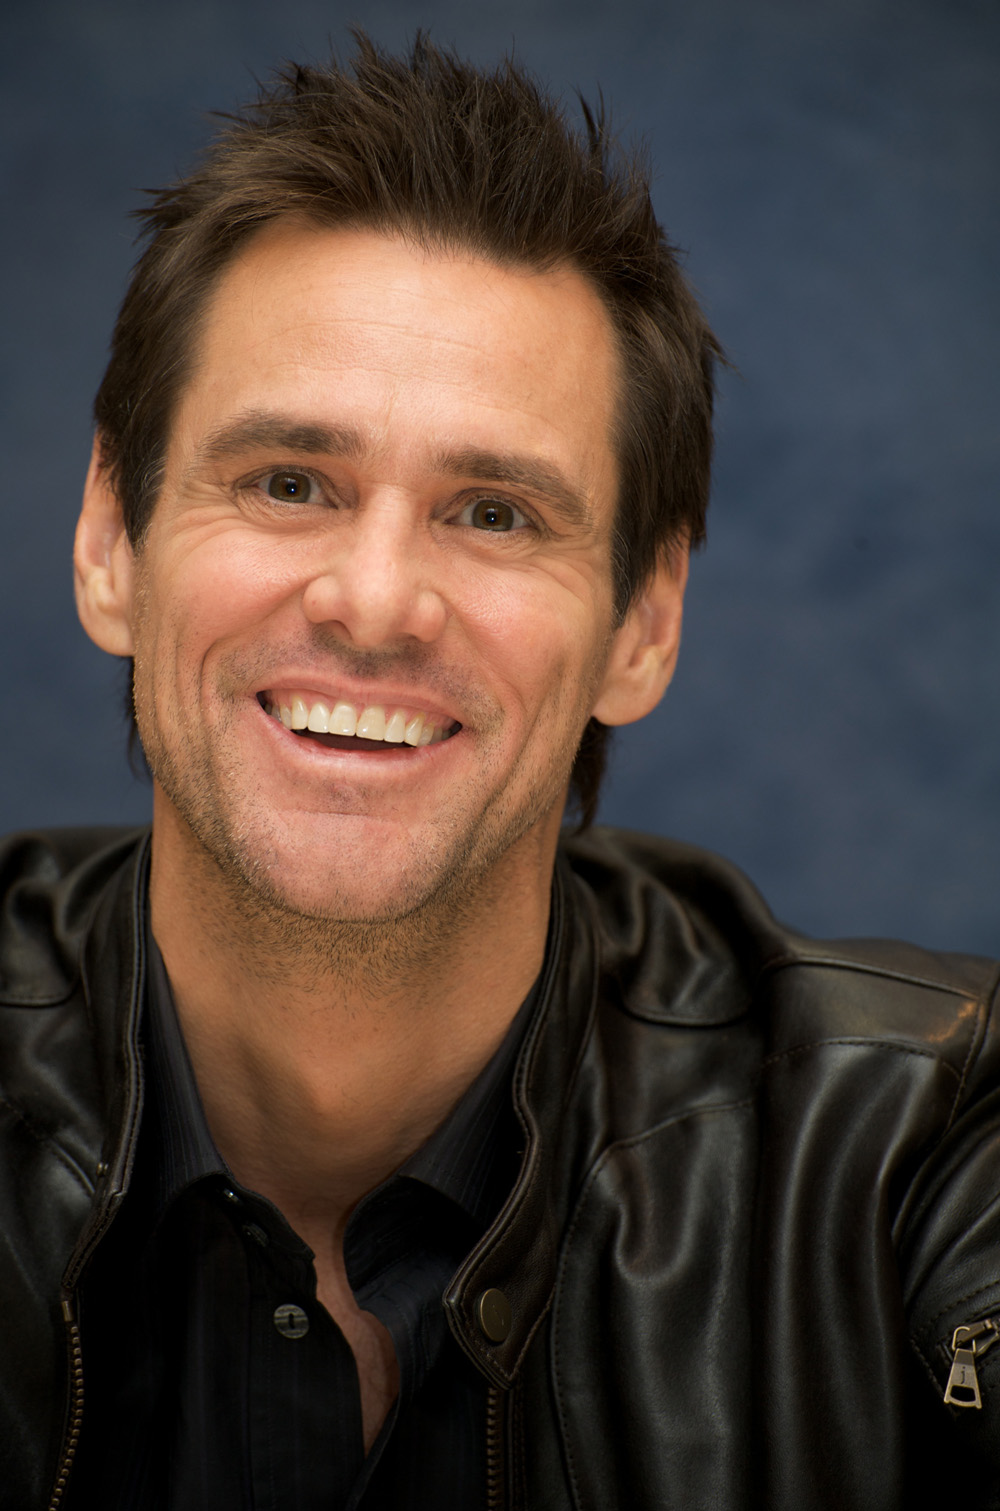 937473-jim-carrey 13 Comedians You Didn't Know Suffered From Depression